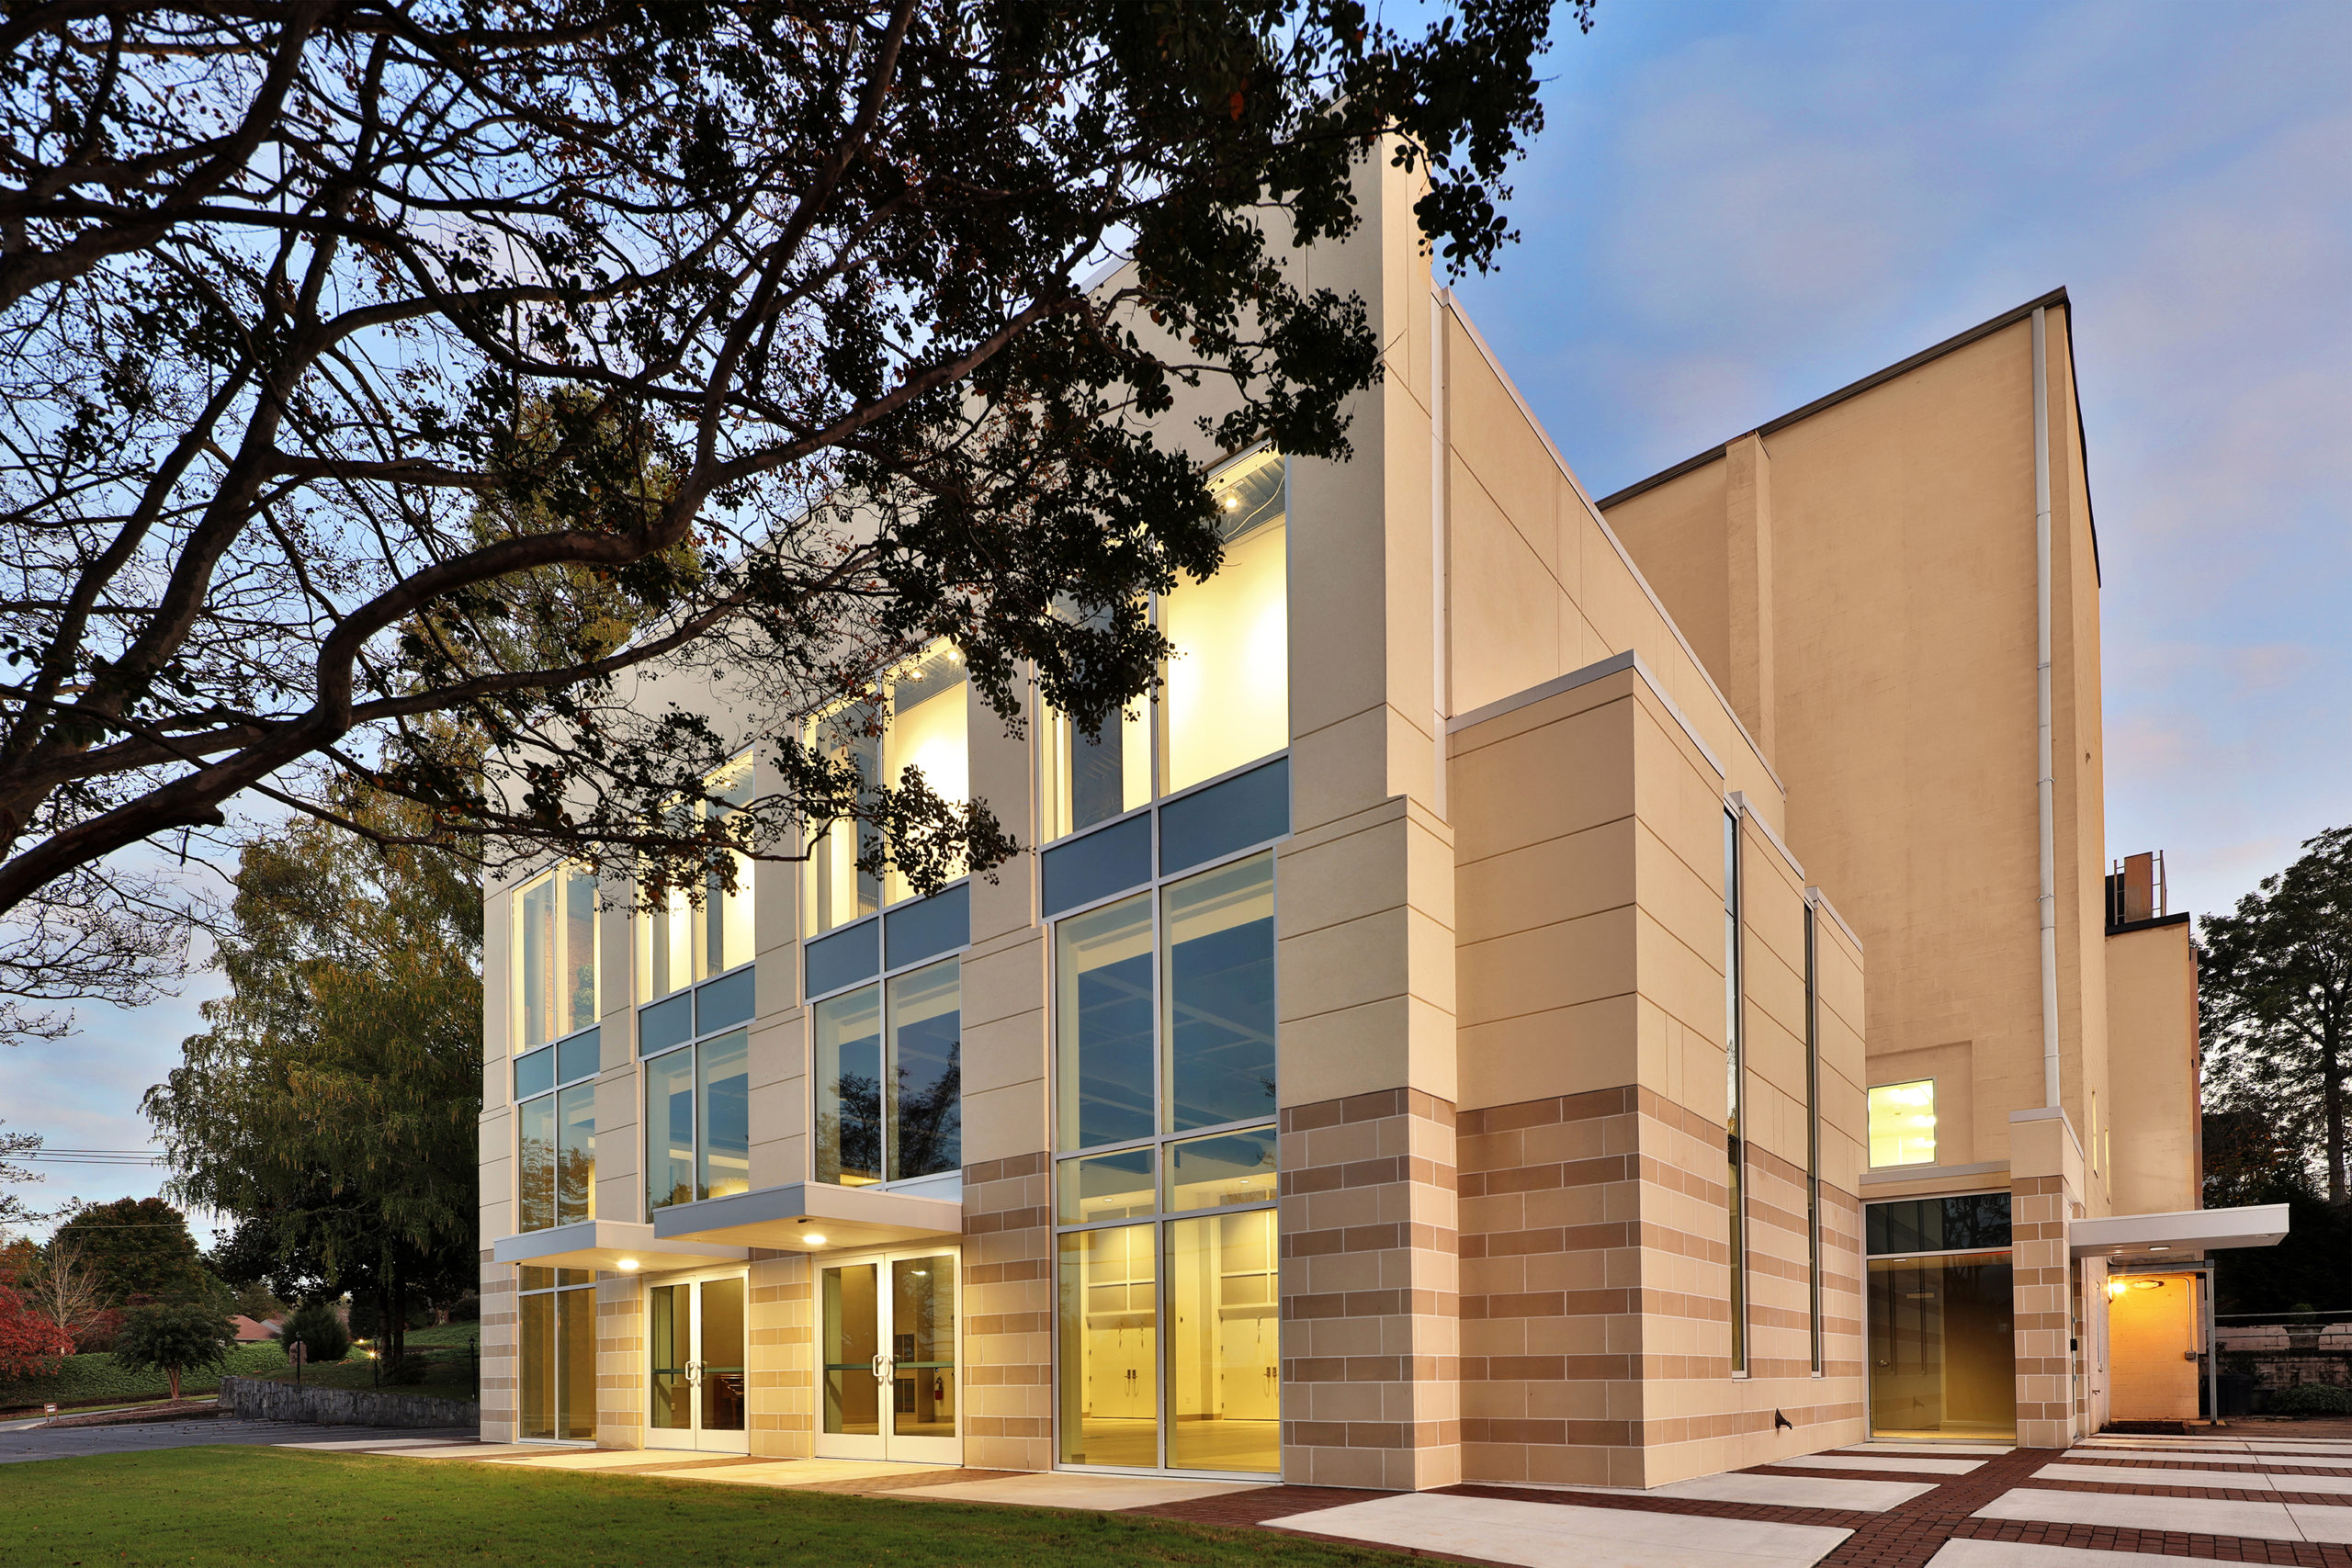 Image of the Tryon Fine Arts Center project.